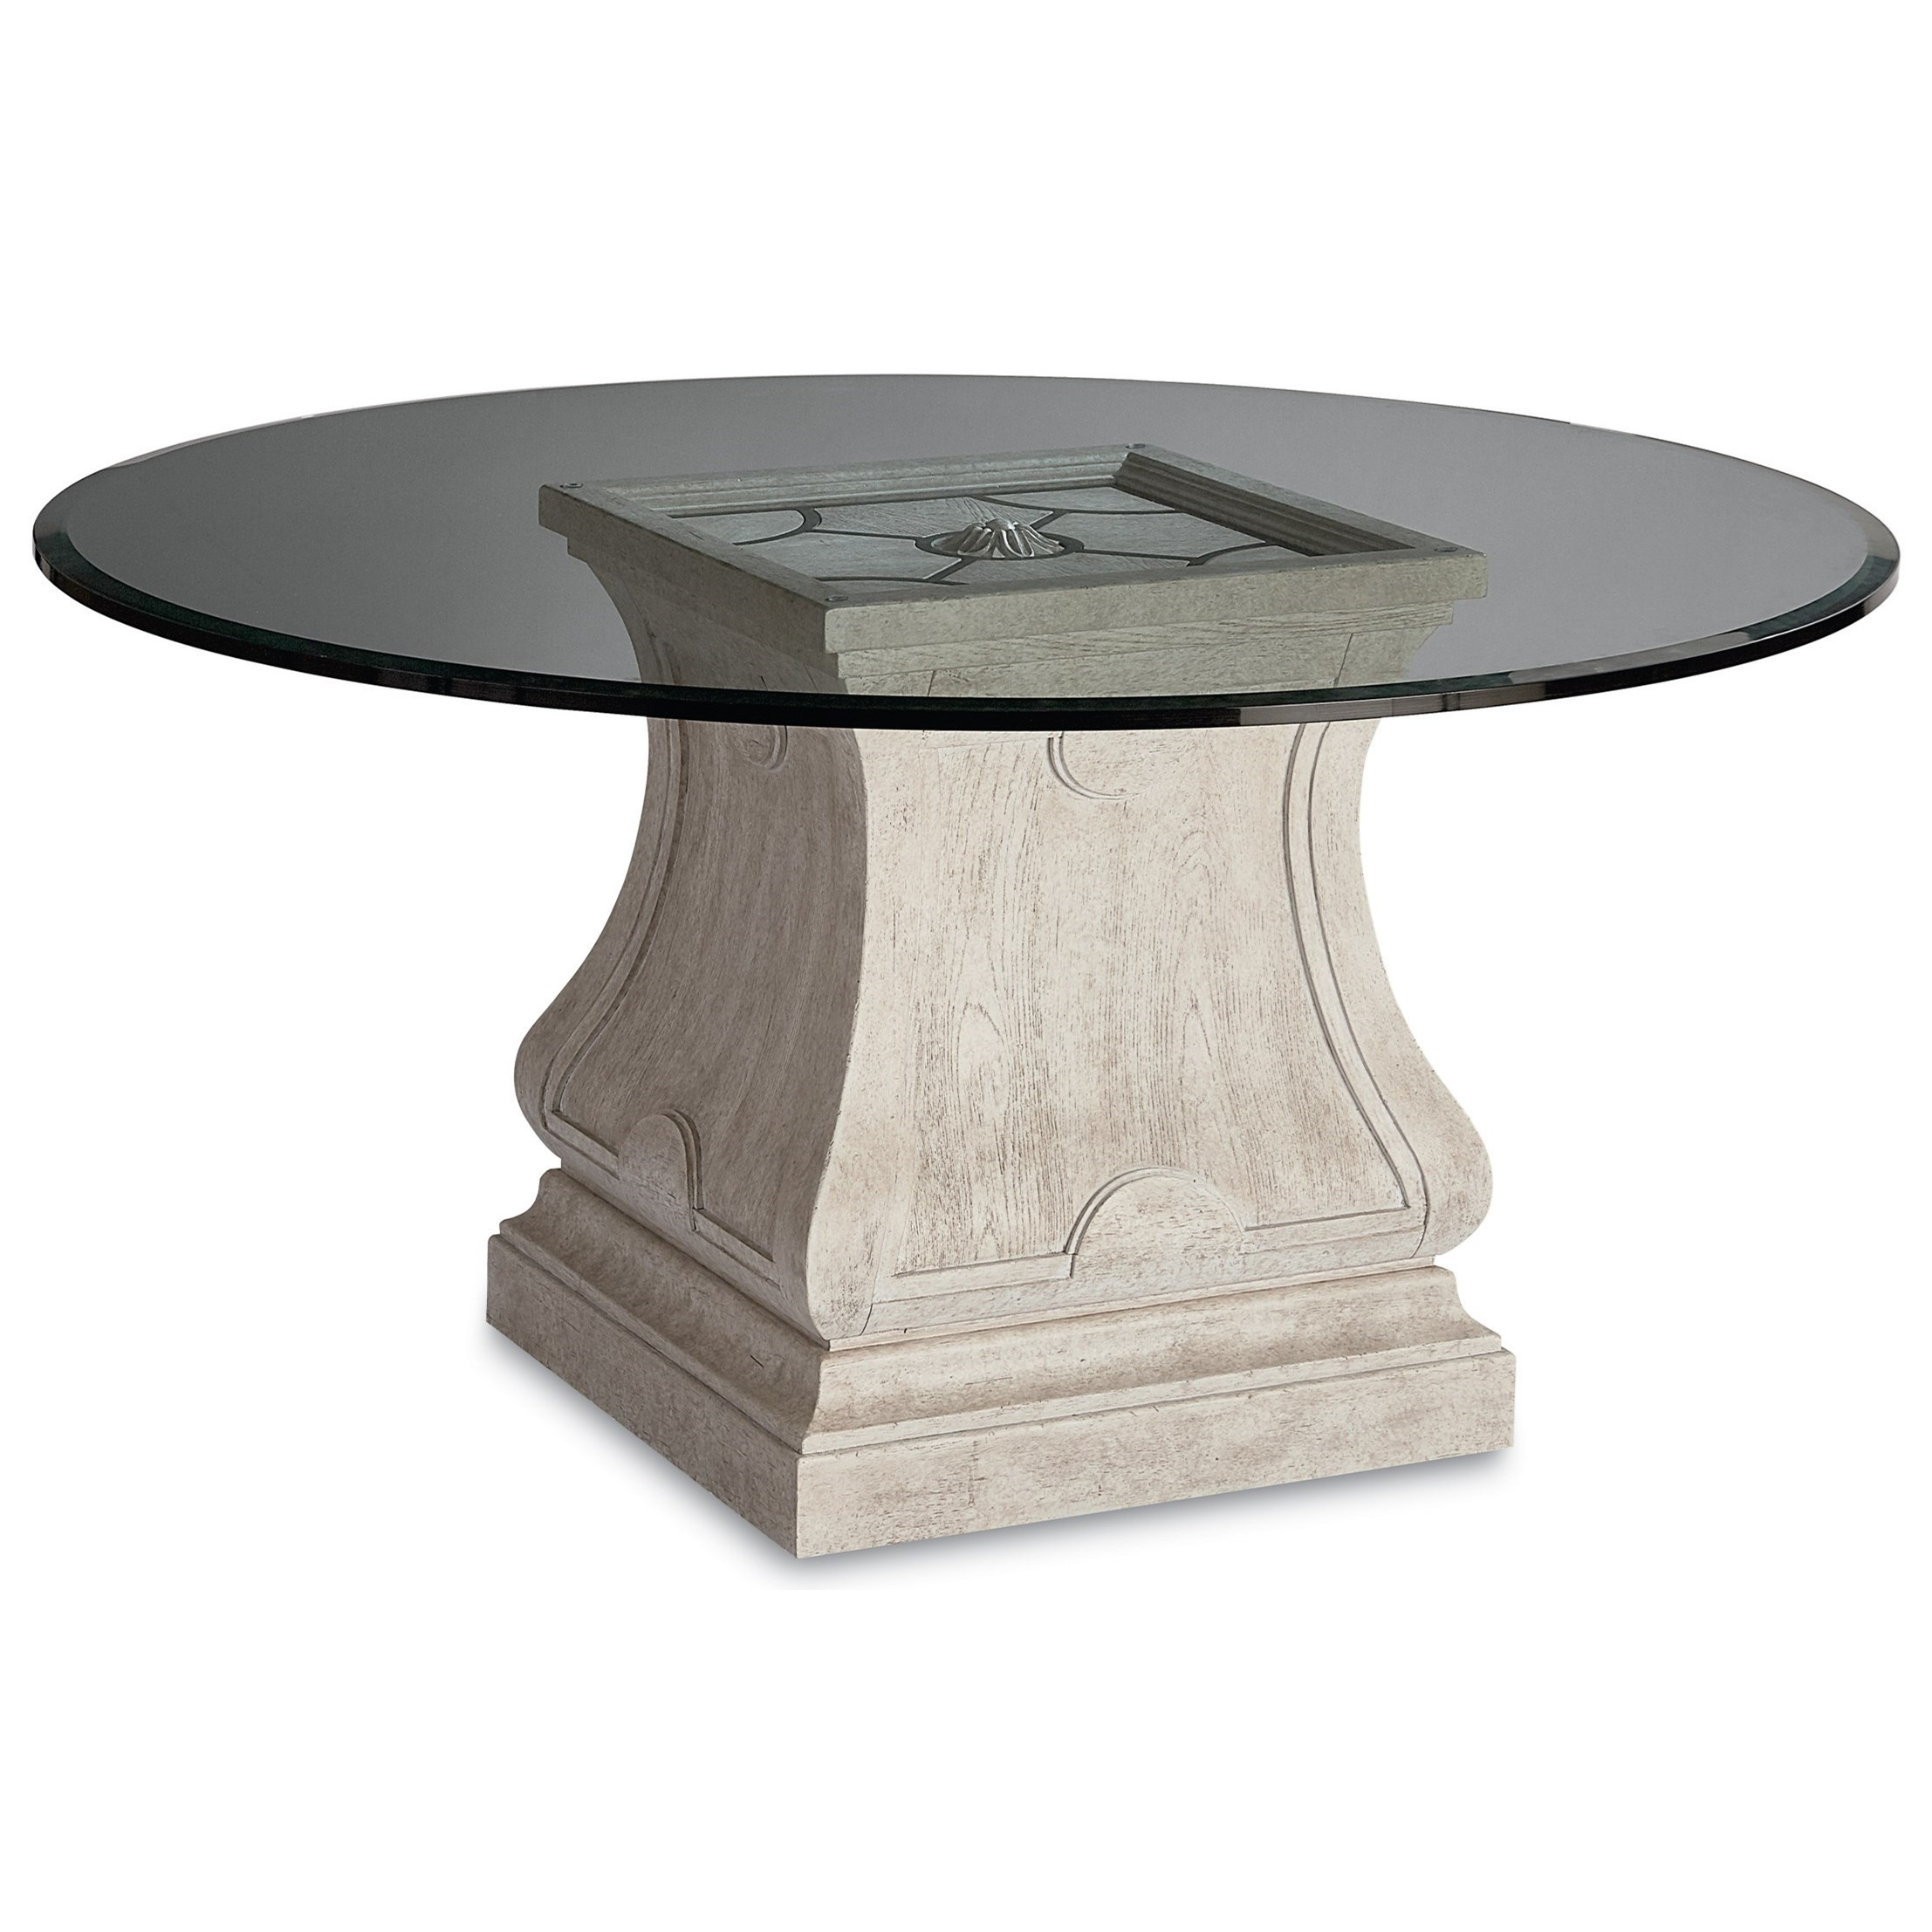 "Leoni Round Dining Table with 60"" Glass Top"